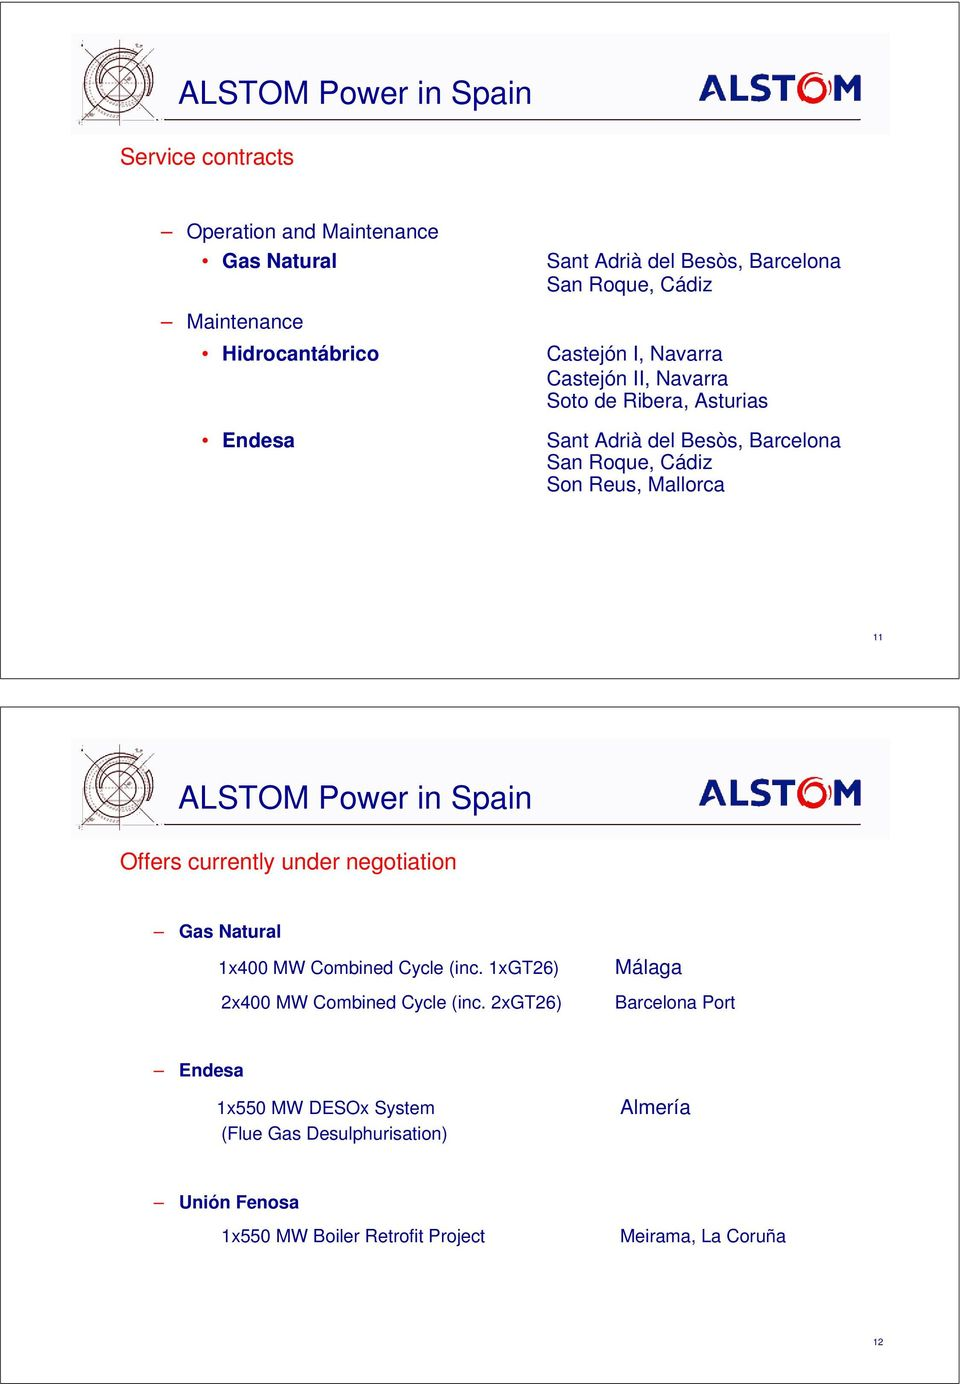 Mallorca 11 ALSTOM Power in Spain Offers currently under negotiation Gas Natural 1x400 MW Combined Cycle (inc. 1xGT26) 2x400 MW Combined Cycle (inc.